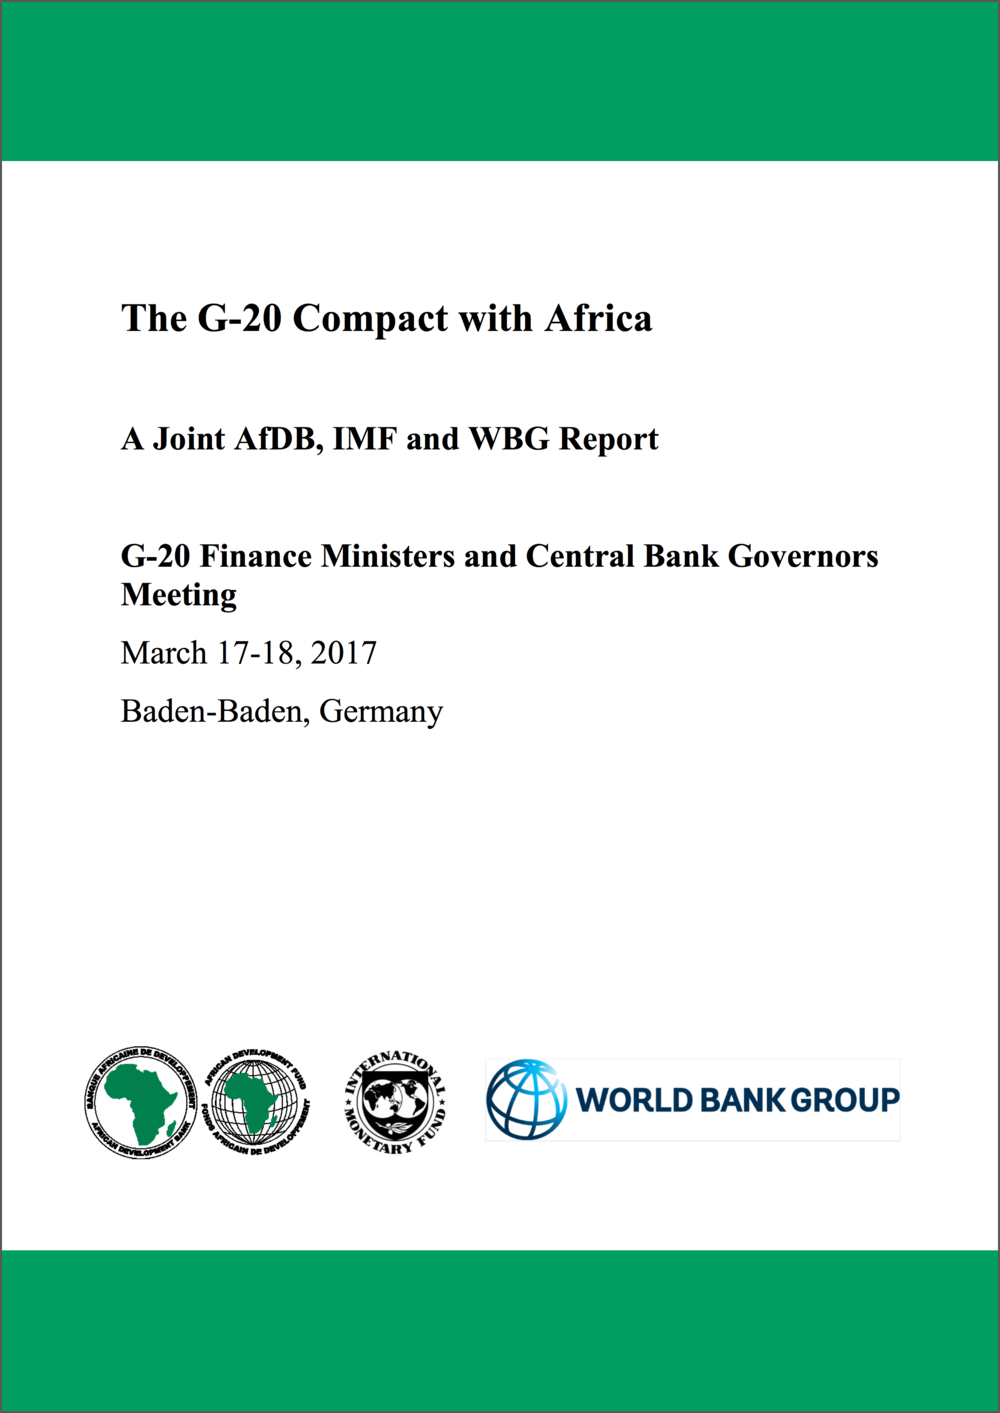 G-20 Compact with Africa Report